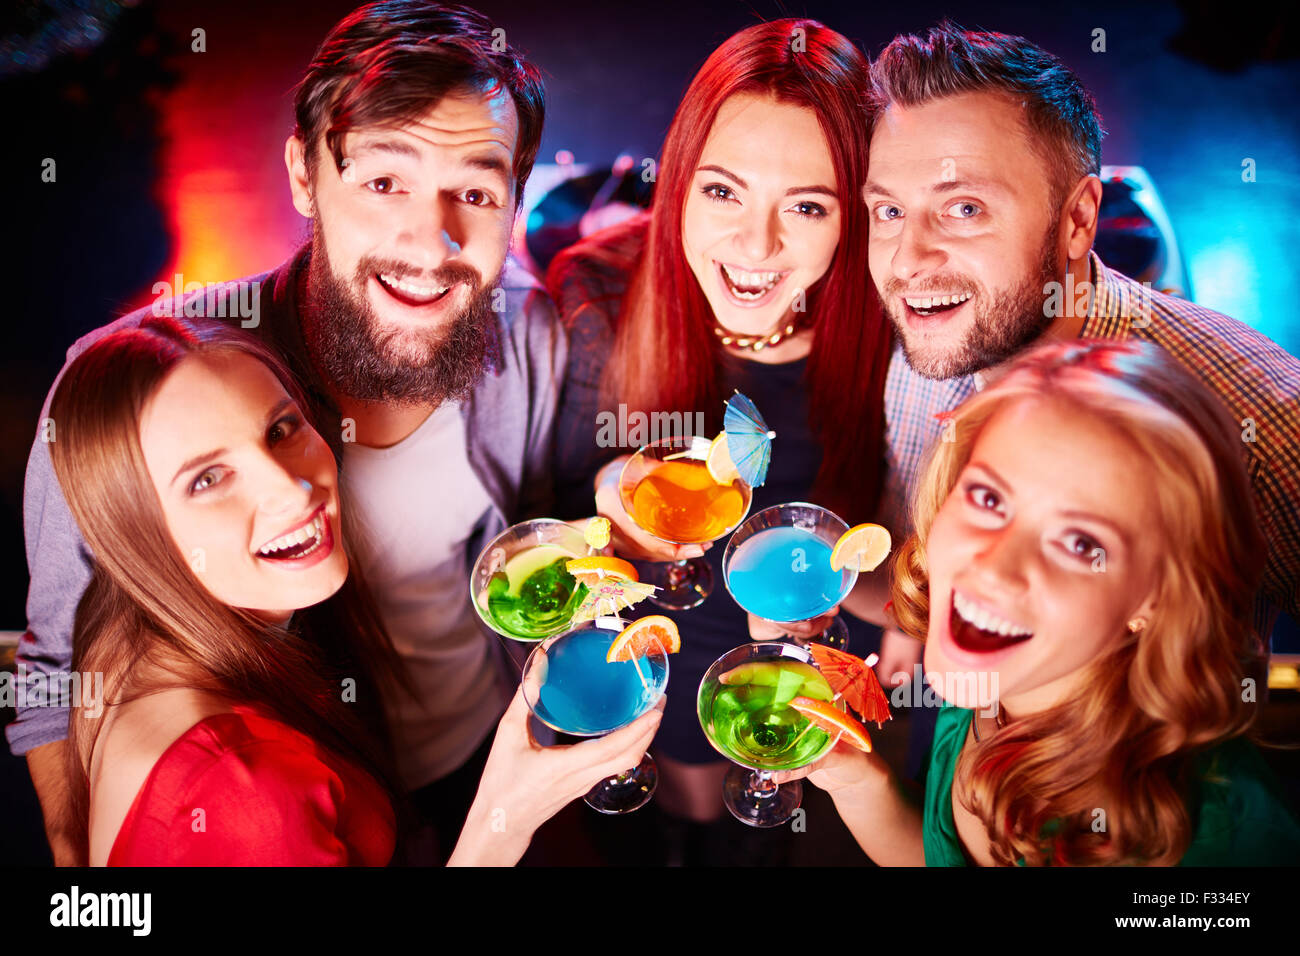 Les gars et les filles en extase toasting at party and looking at camera Photo Stock